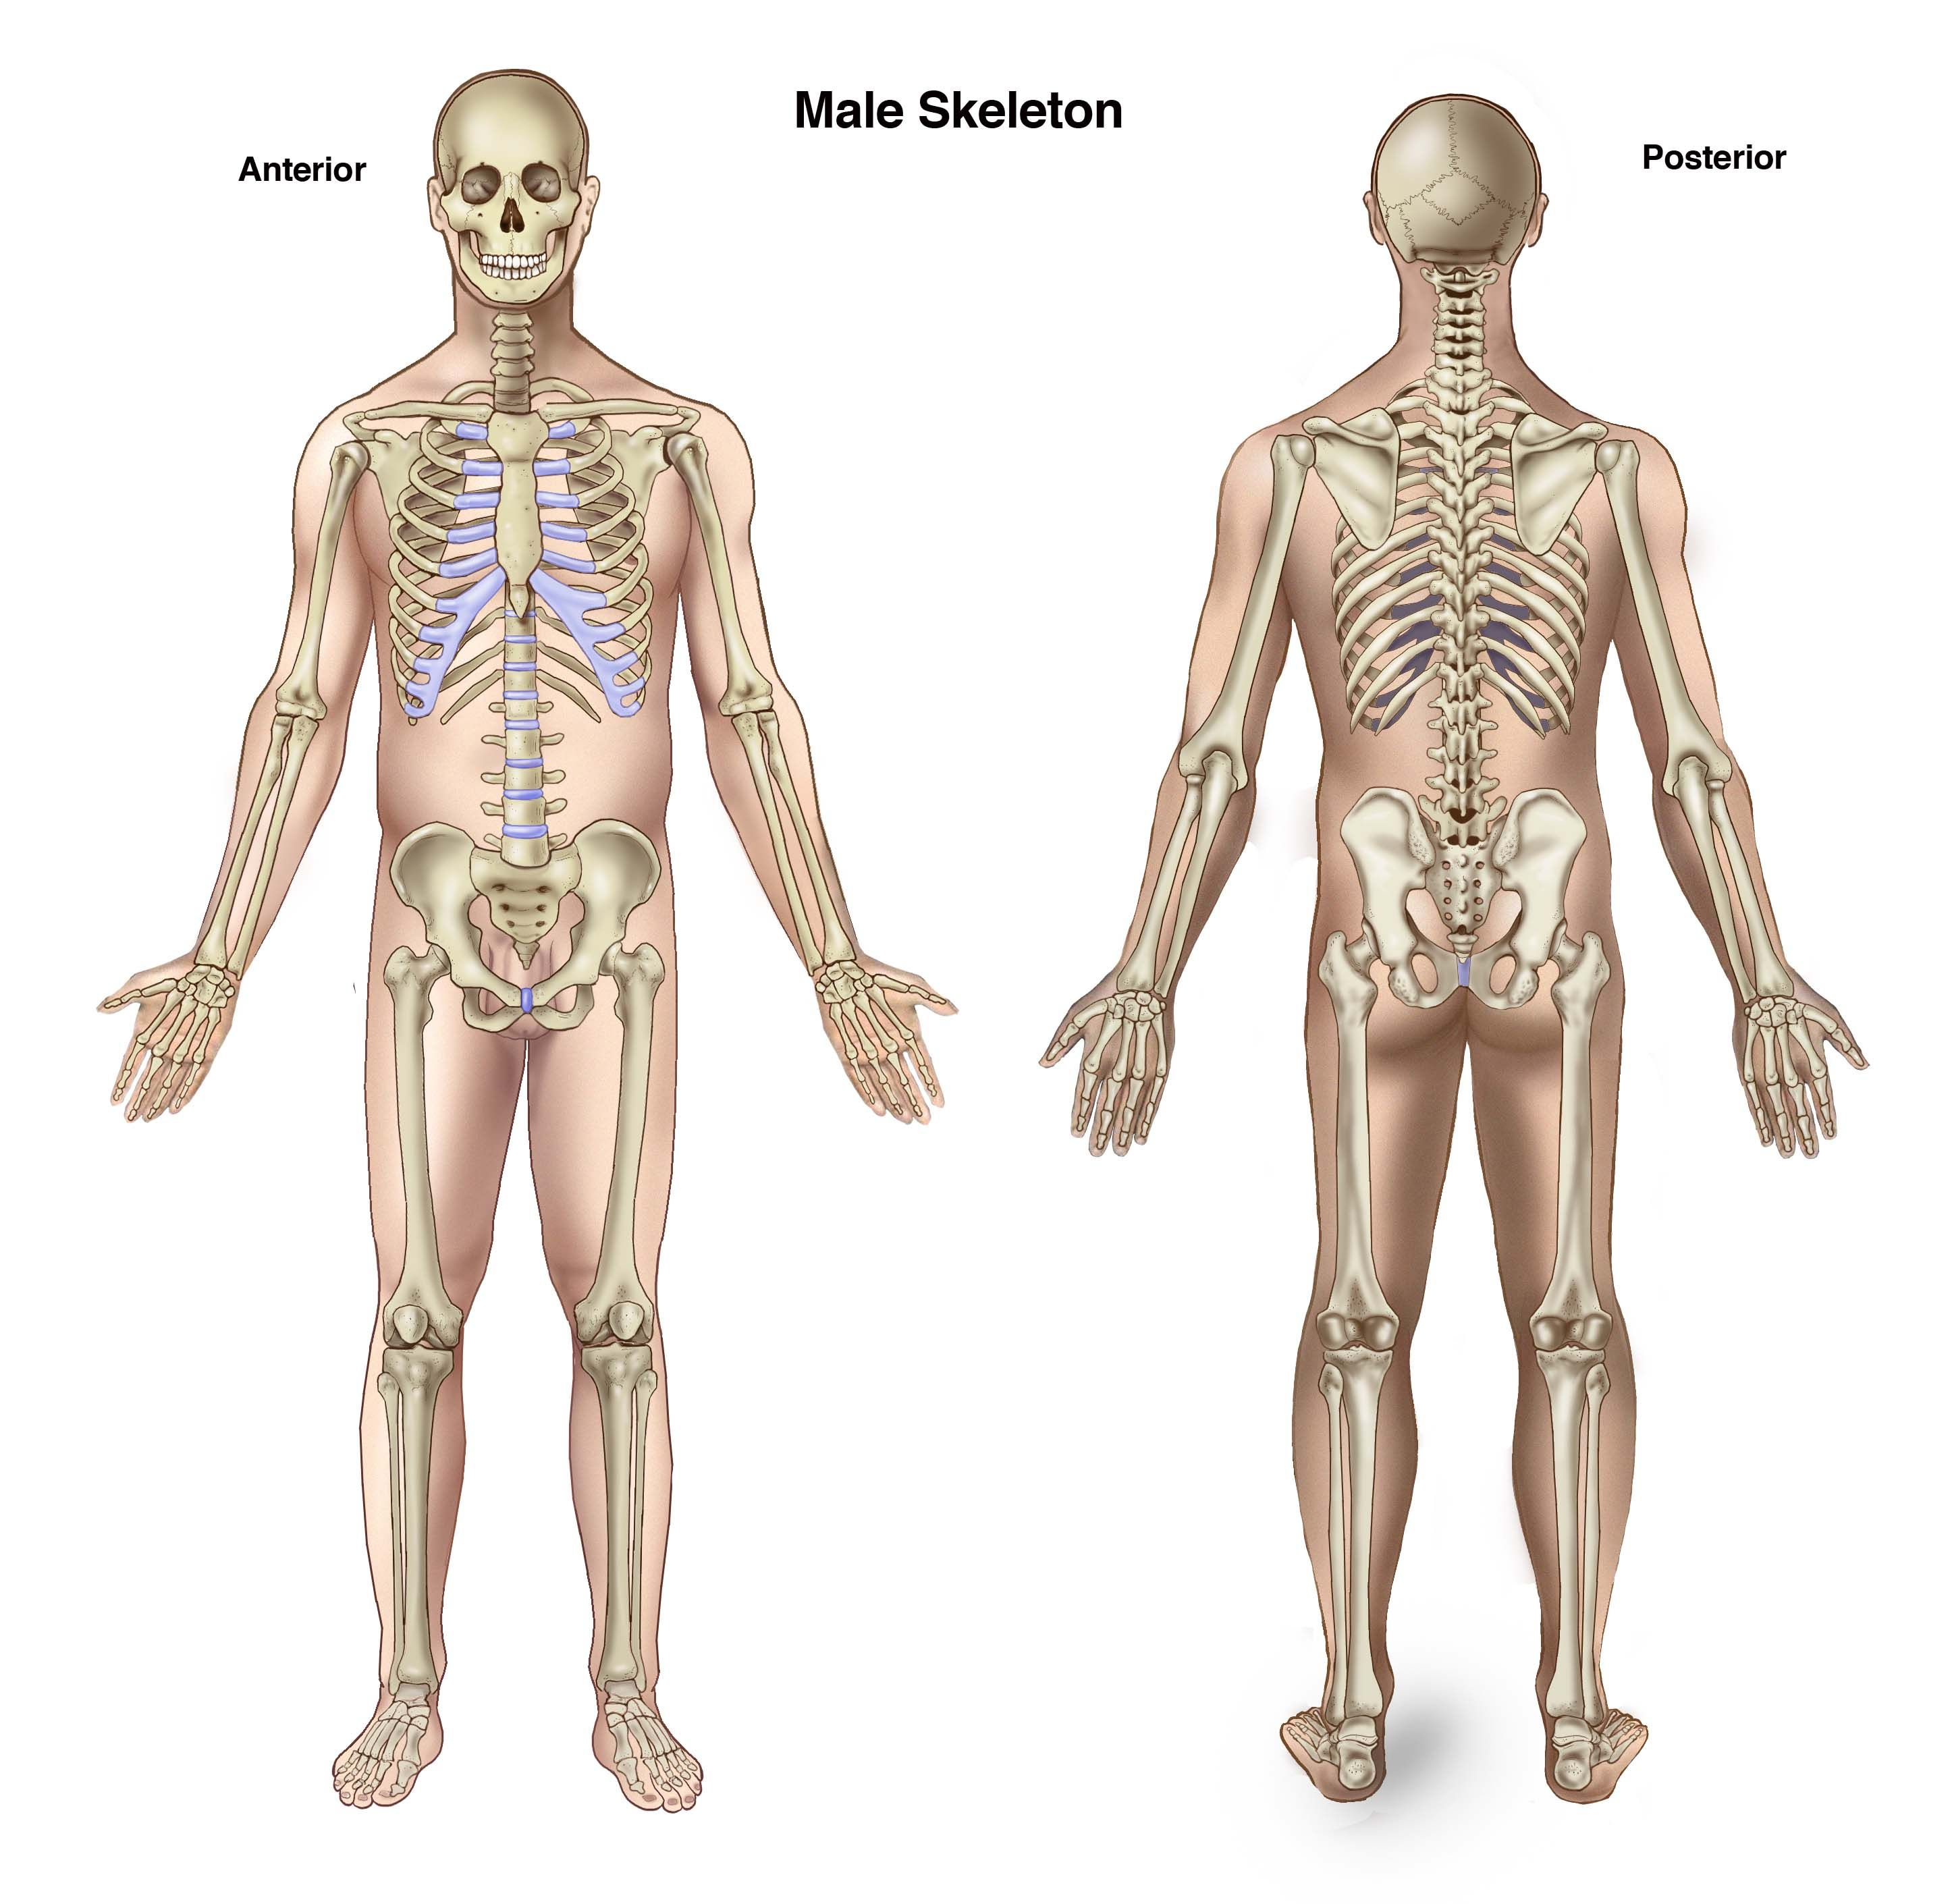 male skeleton anterior and posterior | clay doll armature base for, Skeleton